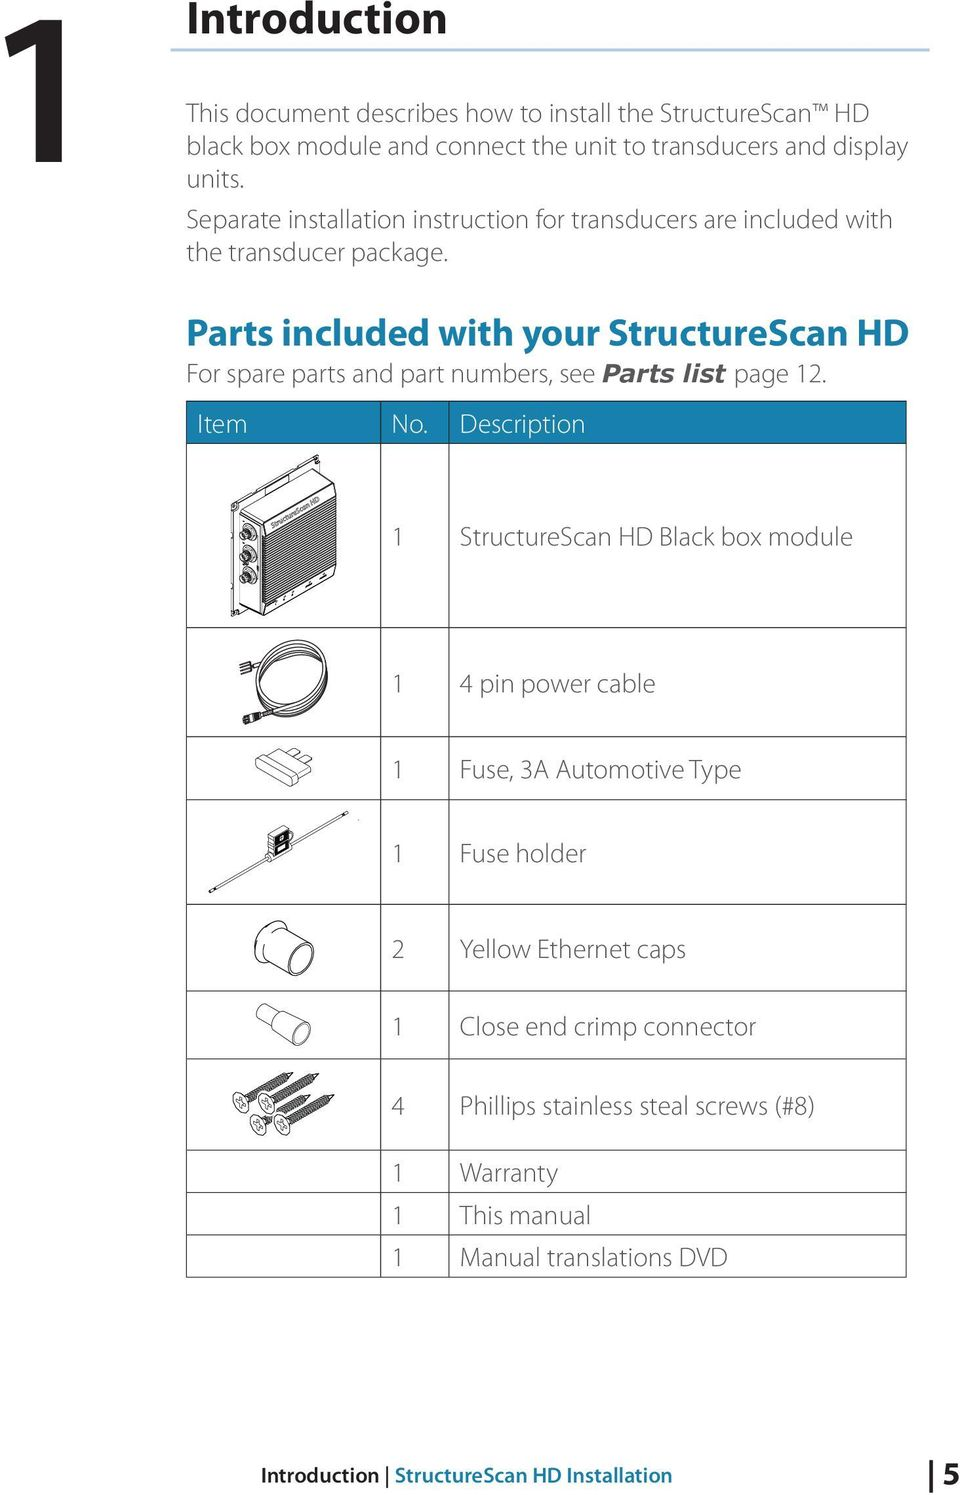 hight resolution of parts included with your structurescan hd for spare parts and part numbers see parts list